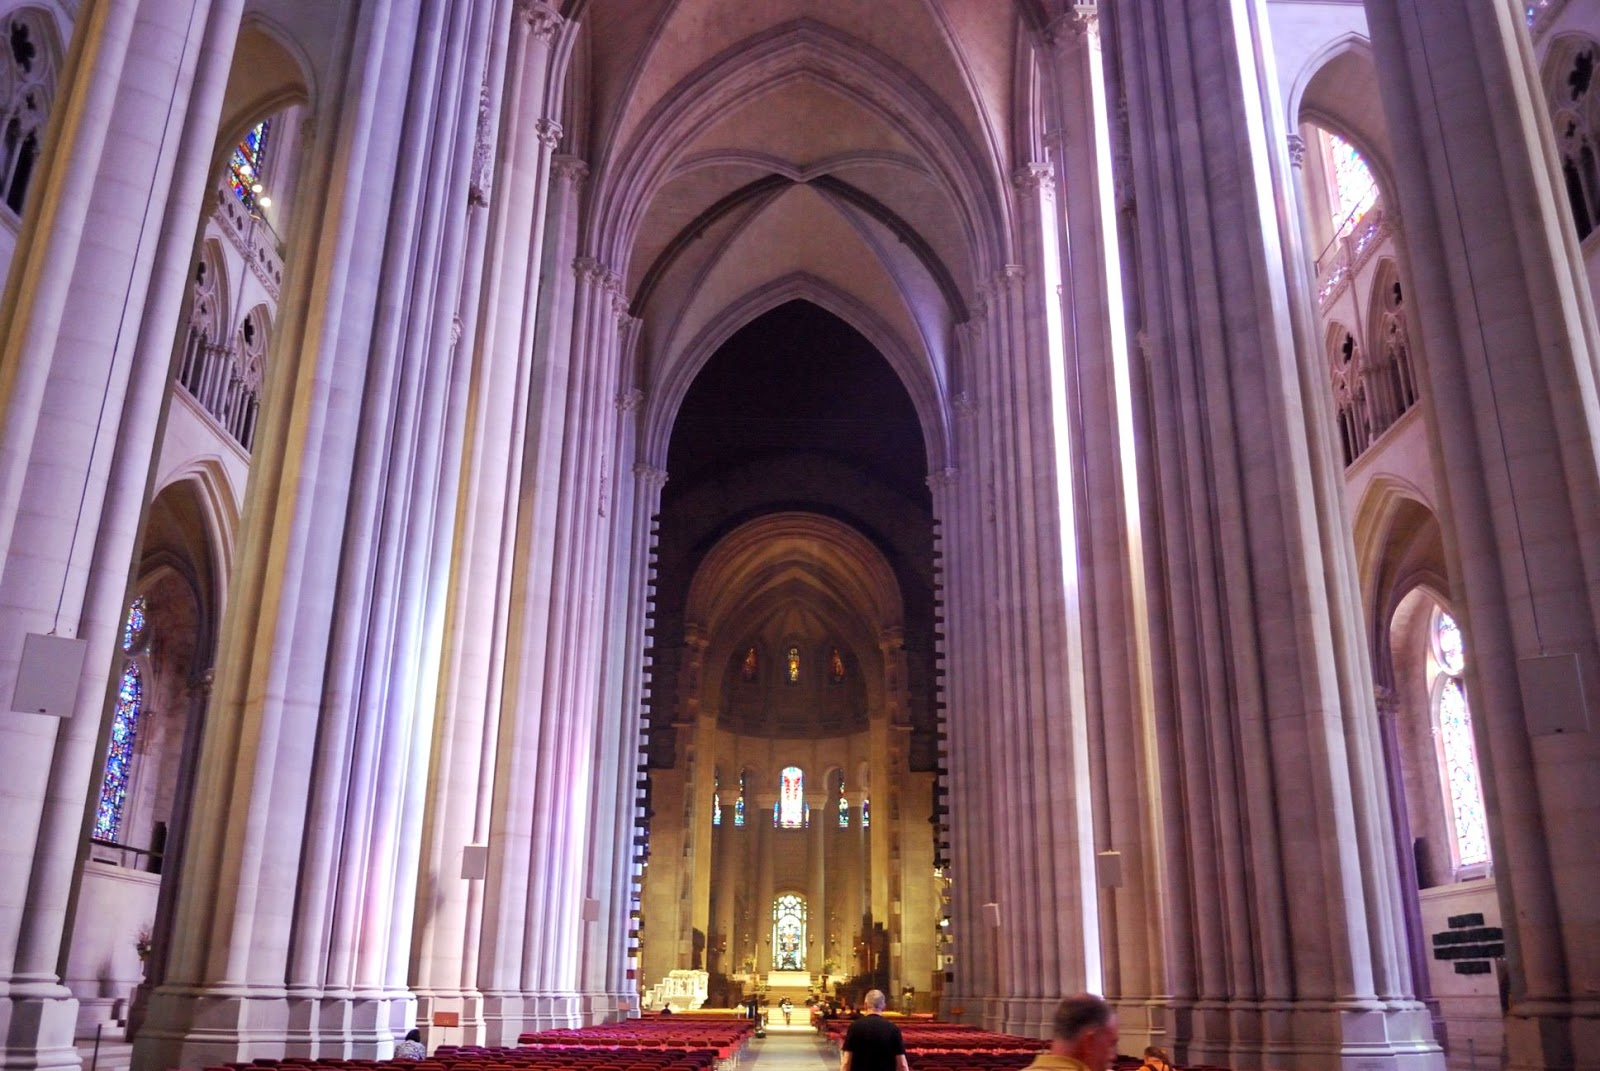 Cathedral of Saint John the Divine, United States